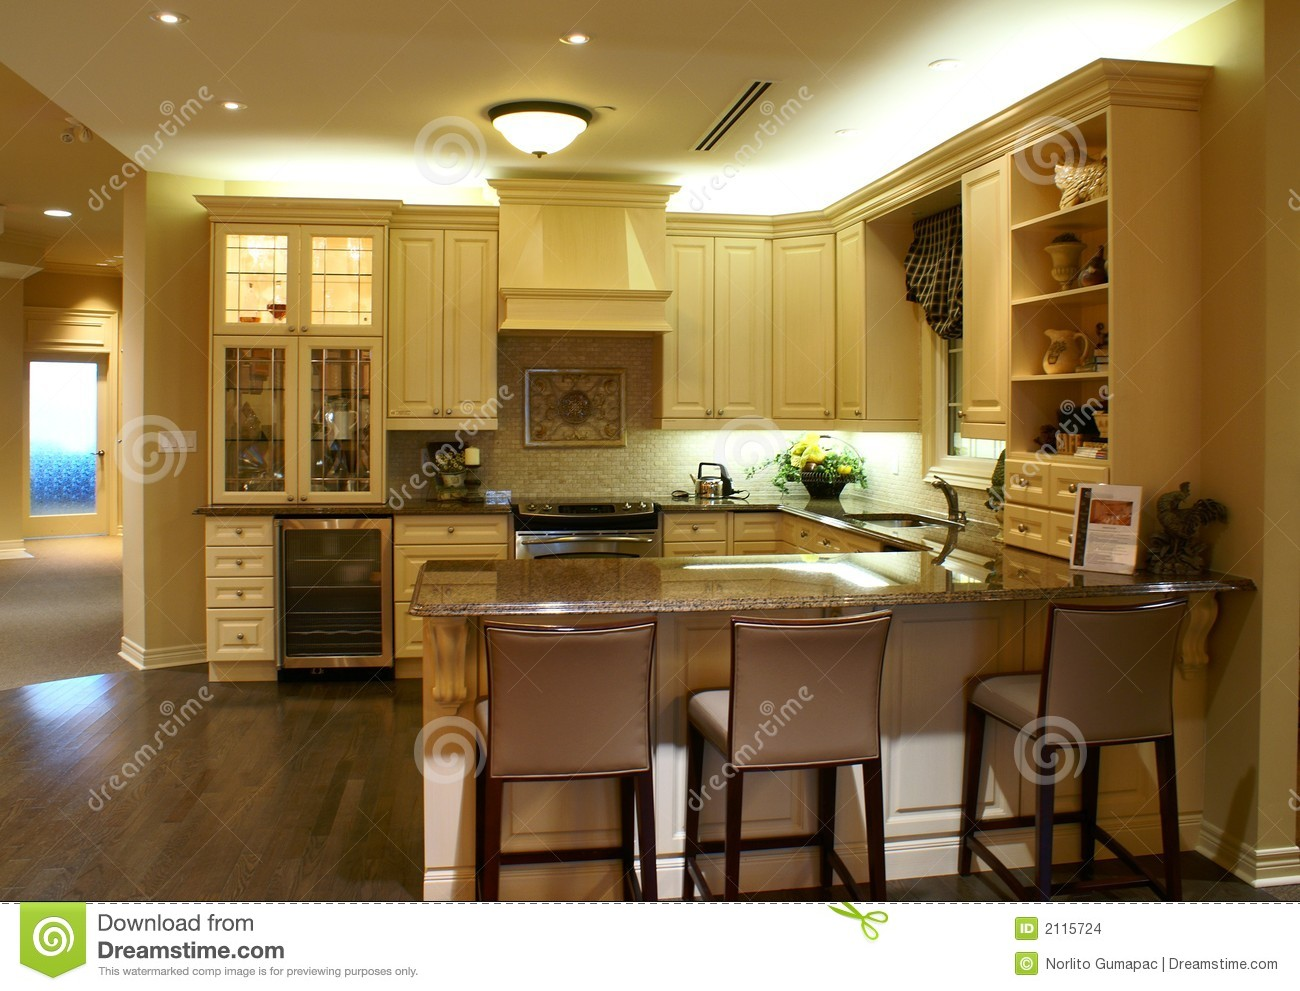 Kitchen With Cherry Cabinets Modern Spacious Kitchen Stock Photo. Image Of Classic